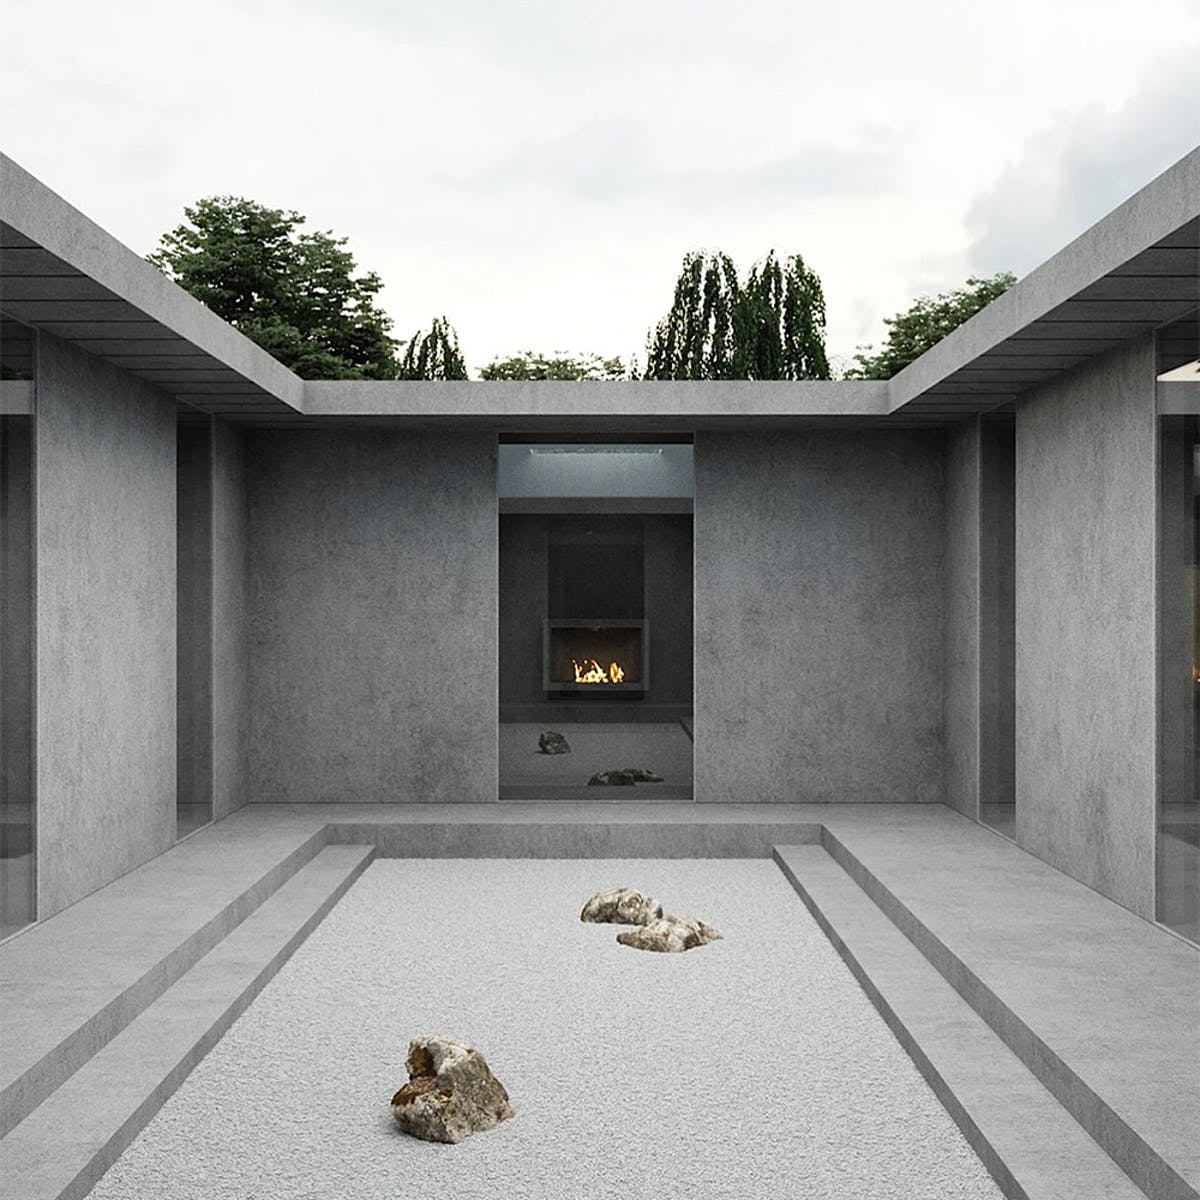 Kanye West's First YEEZY Home Project Appears To Be A